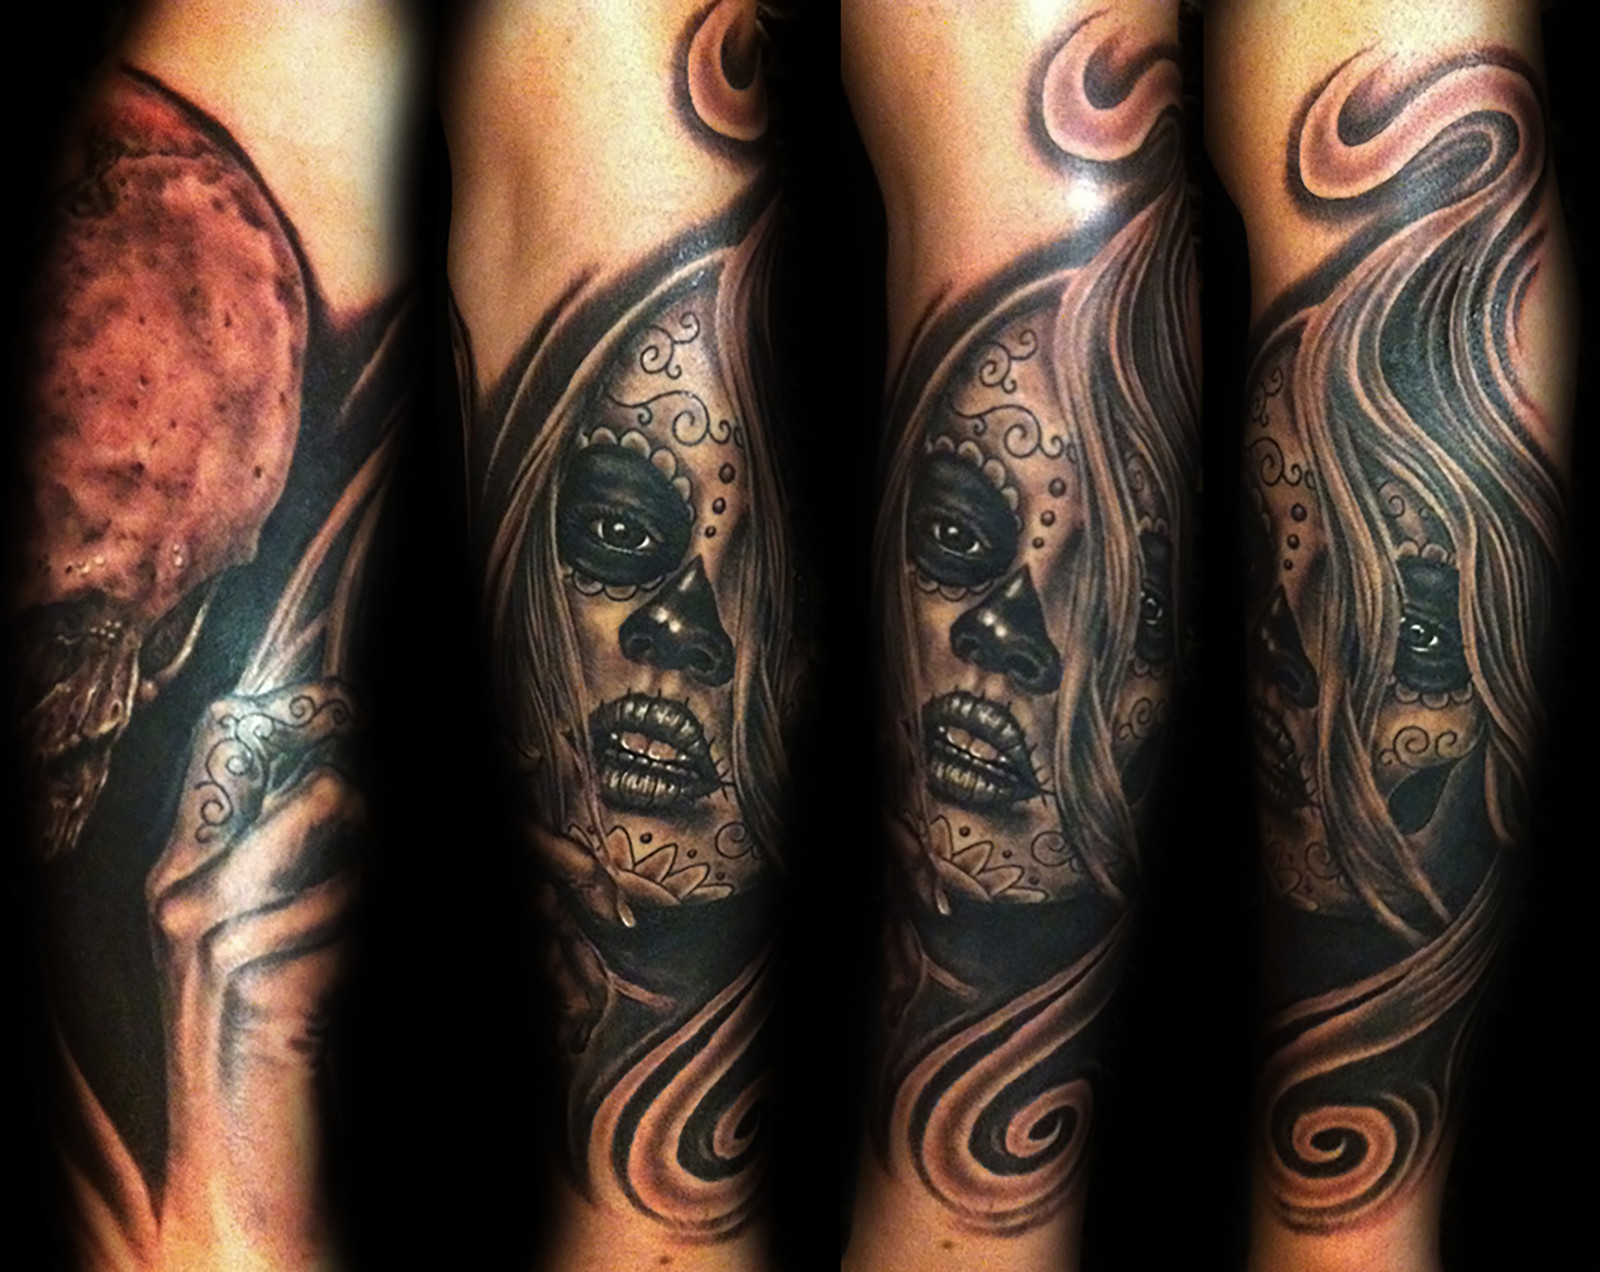 day of the dead tattoos las vegas best tattoo shops strip